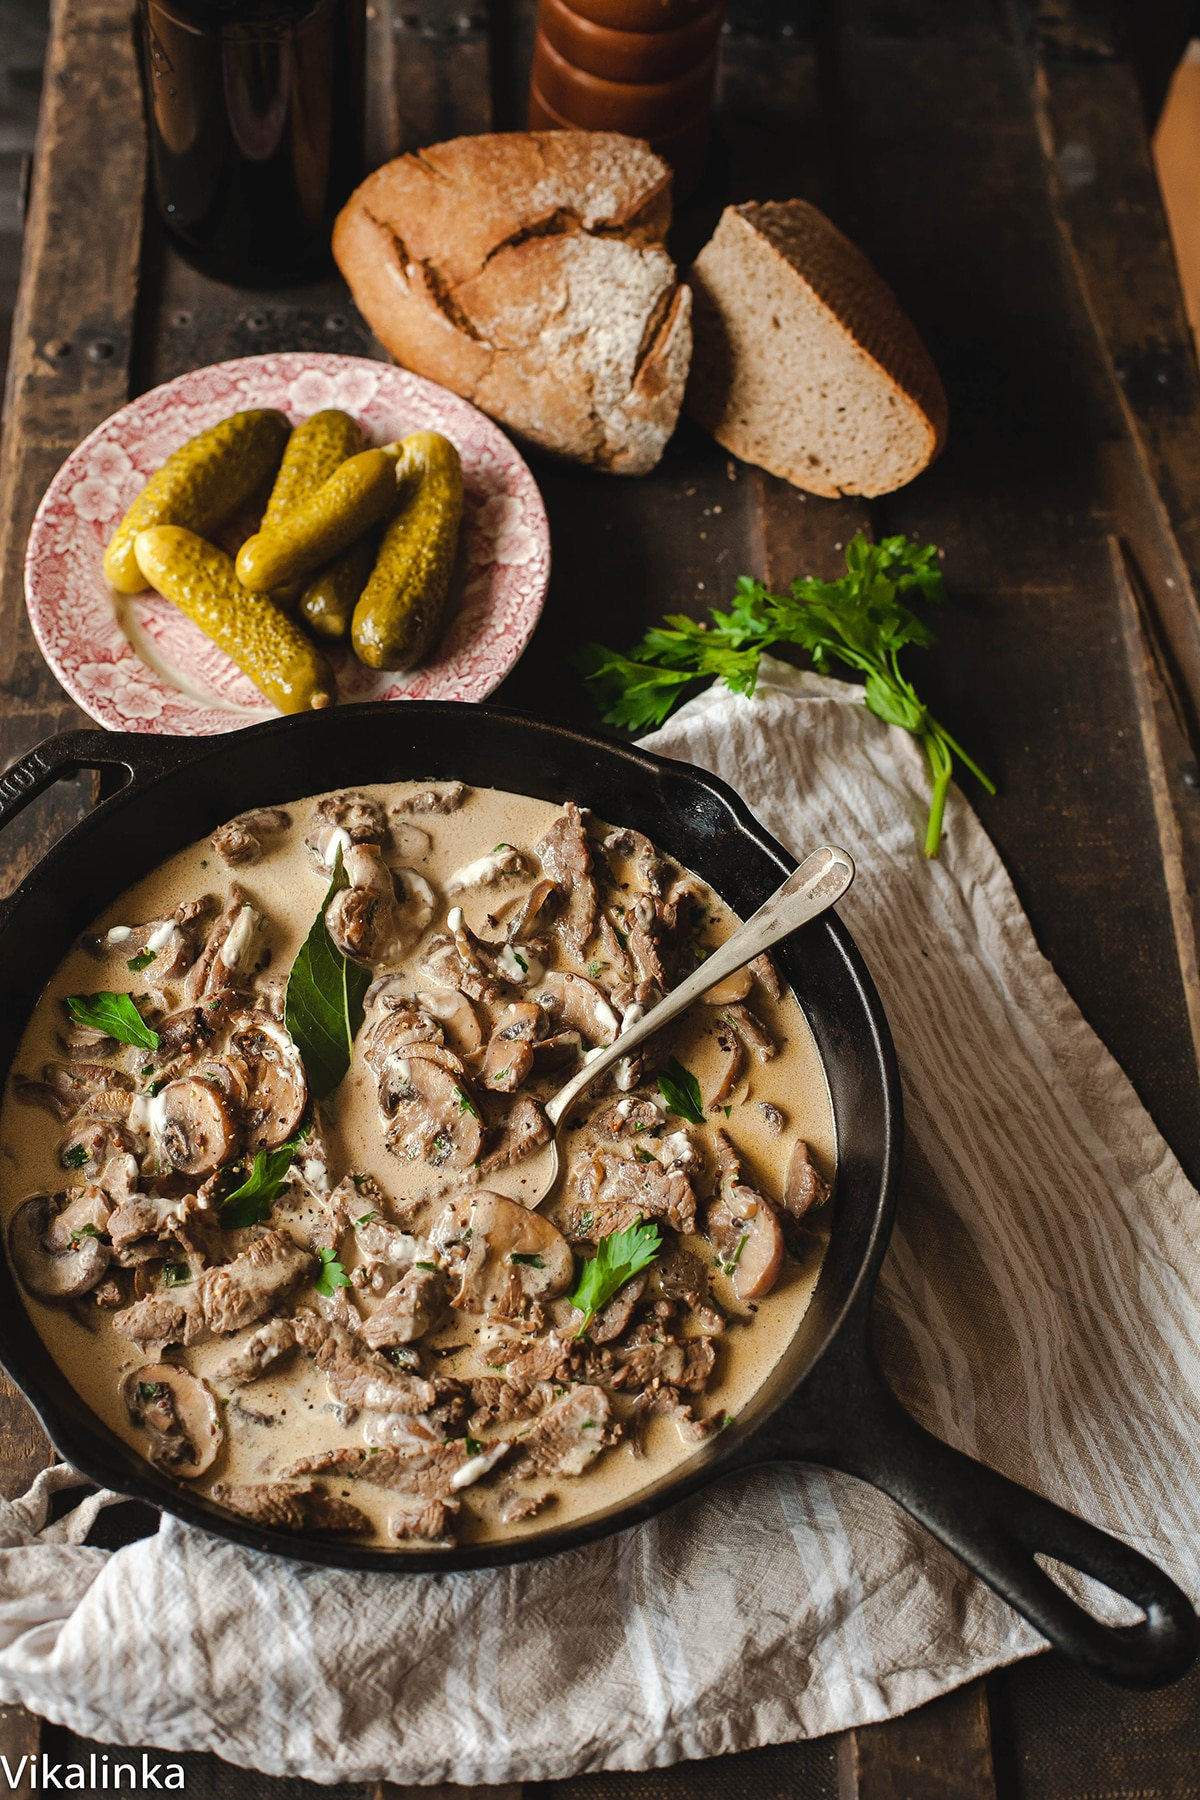 Best Beef Stroganoff Sbs Food